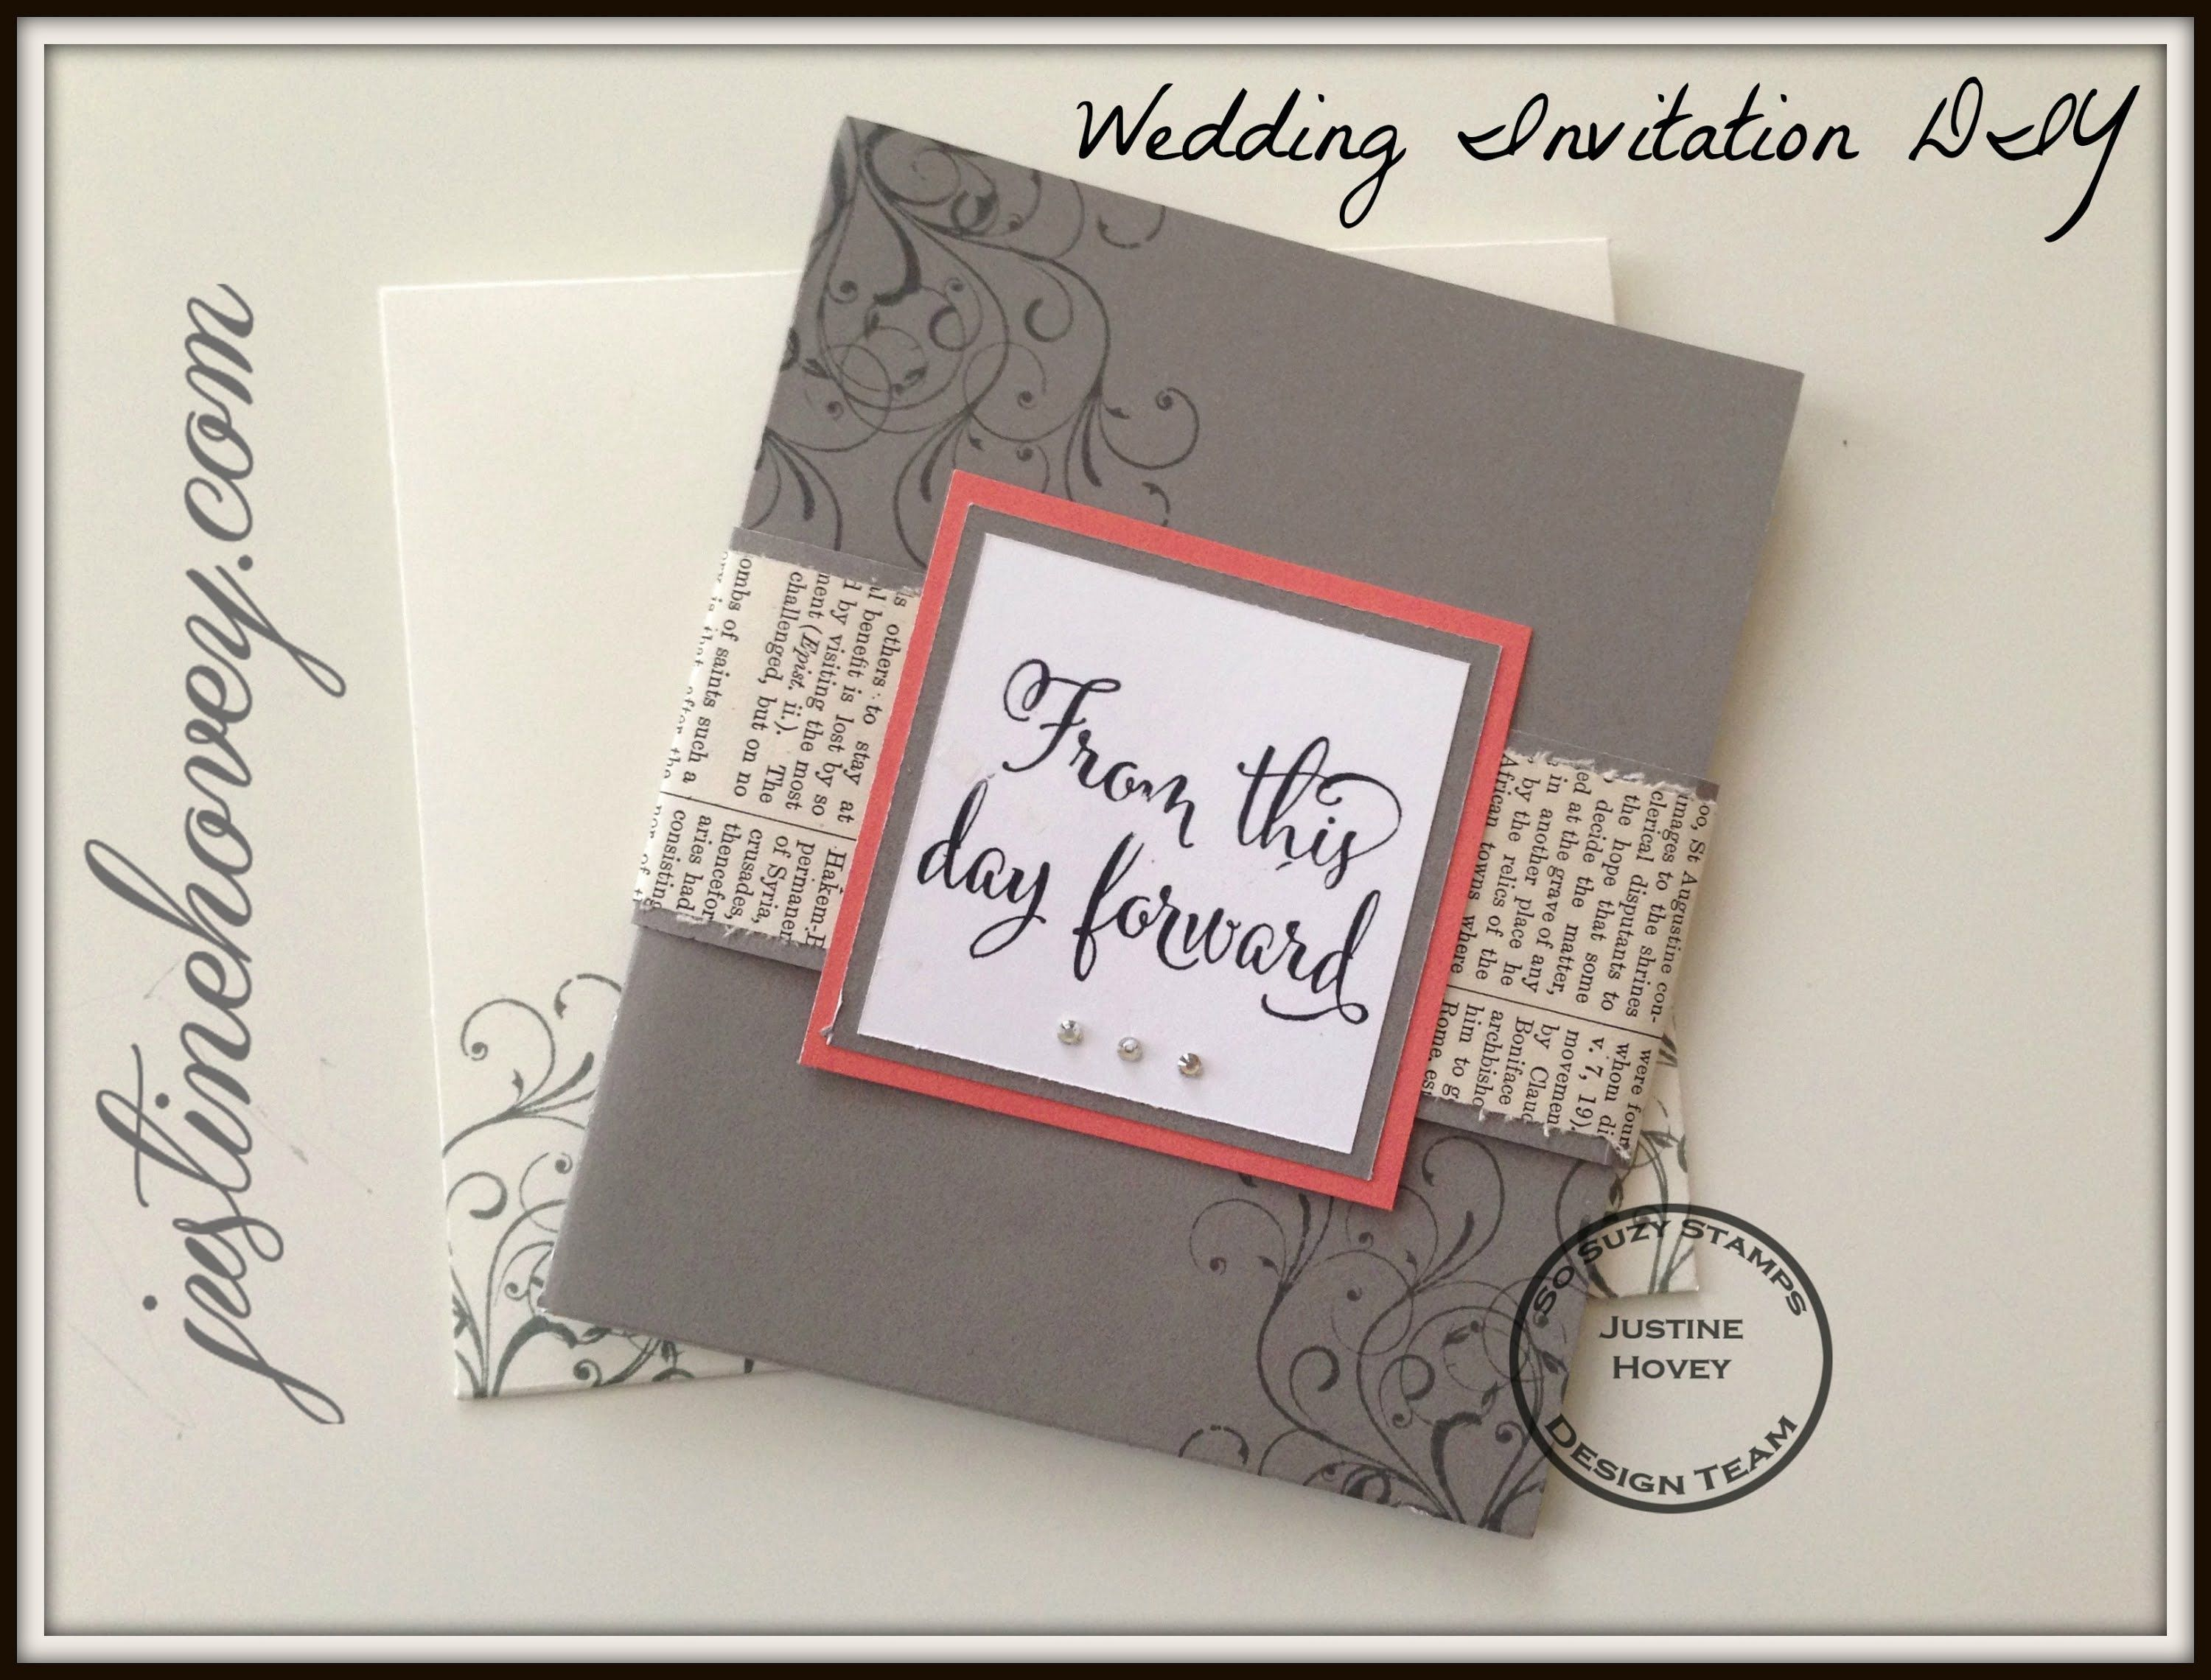 Best Handmade Wedding Invitations Ideas With Smart Design The Easy Diy Handmade Wedding Invit